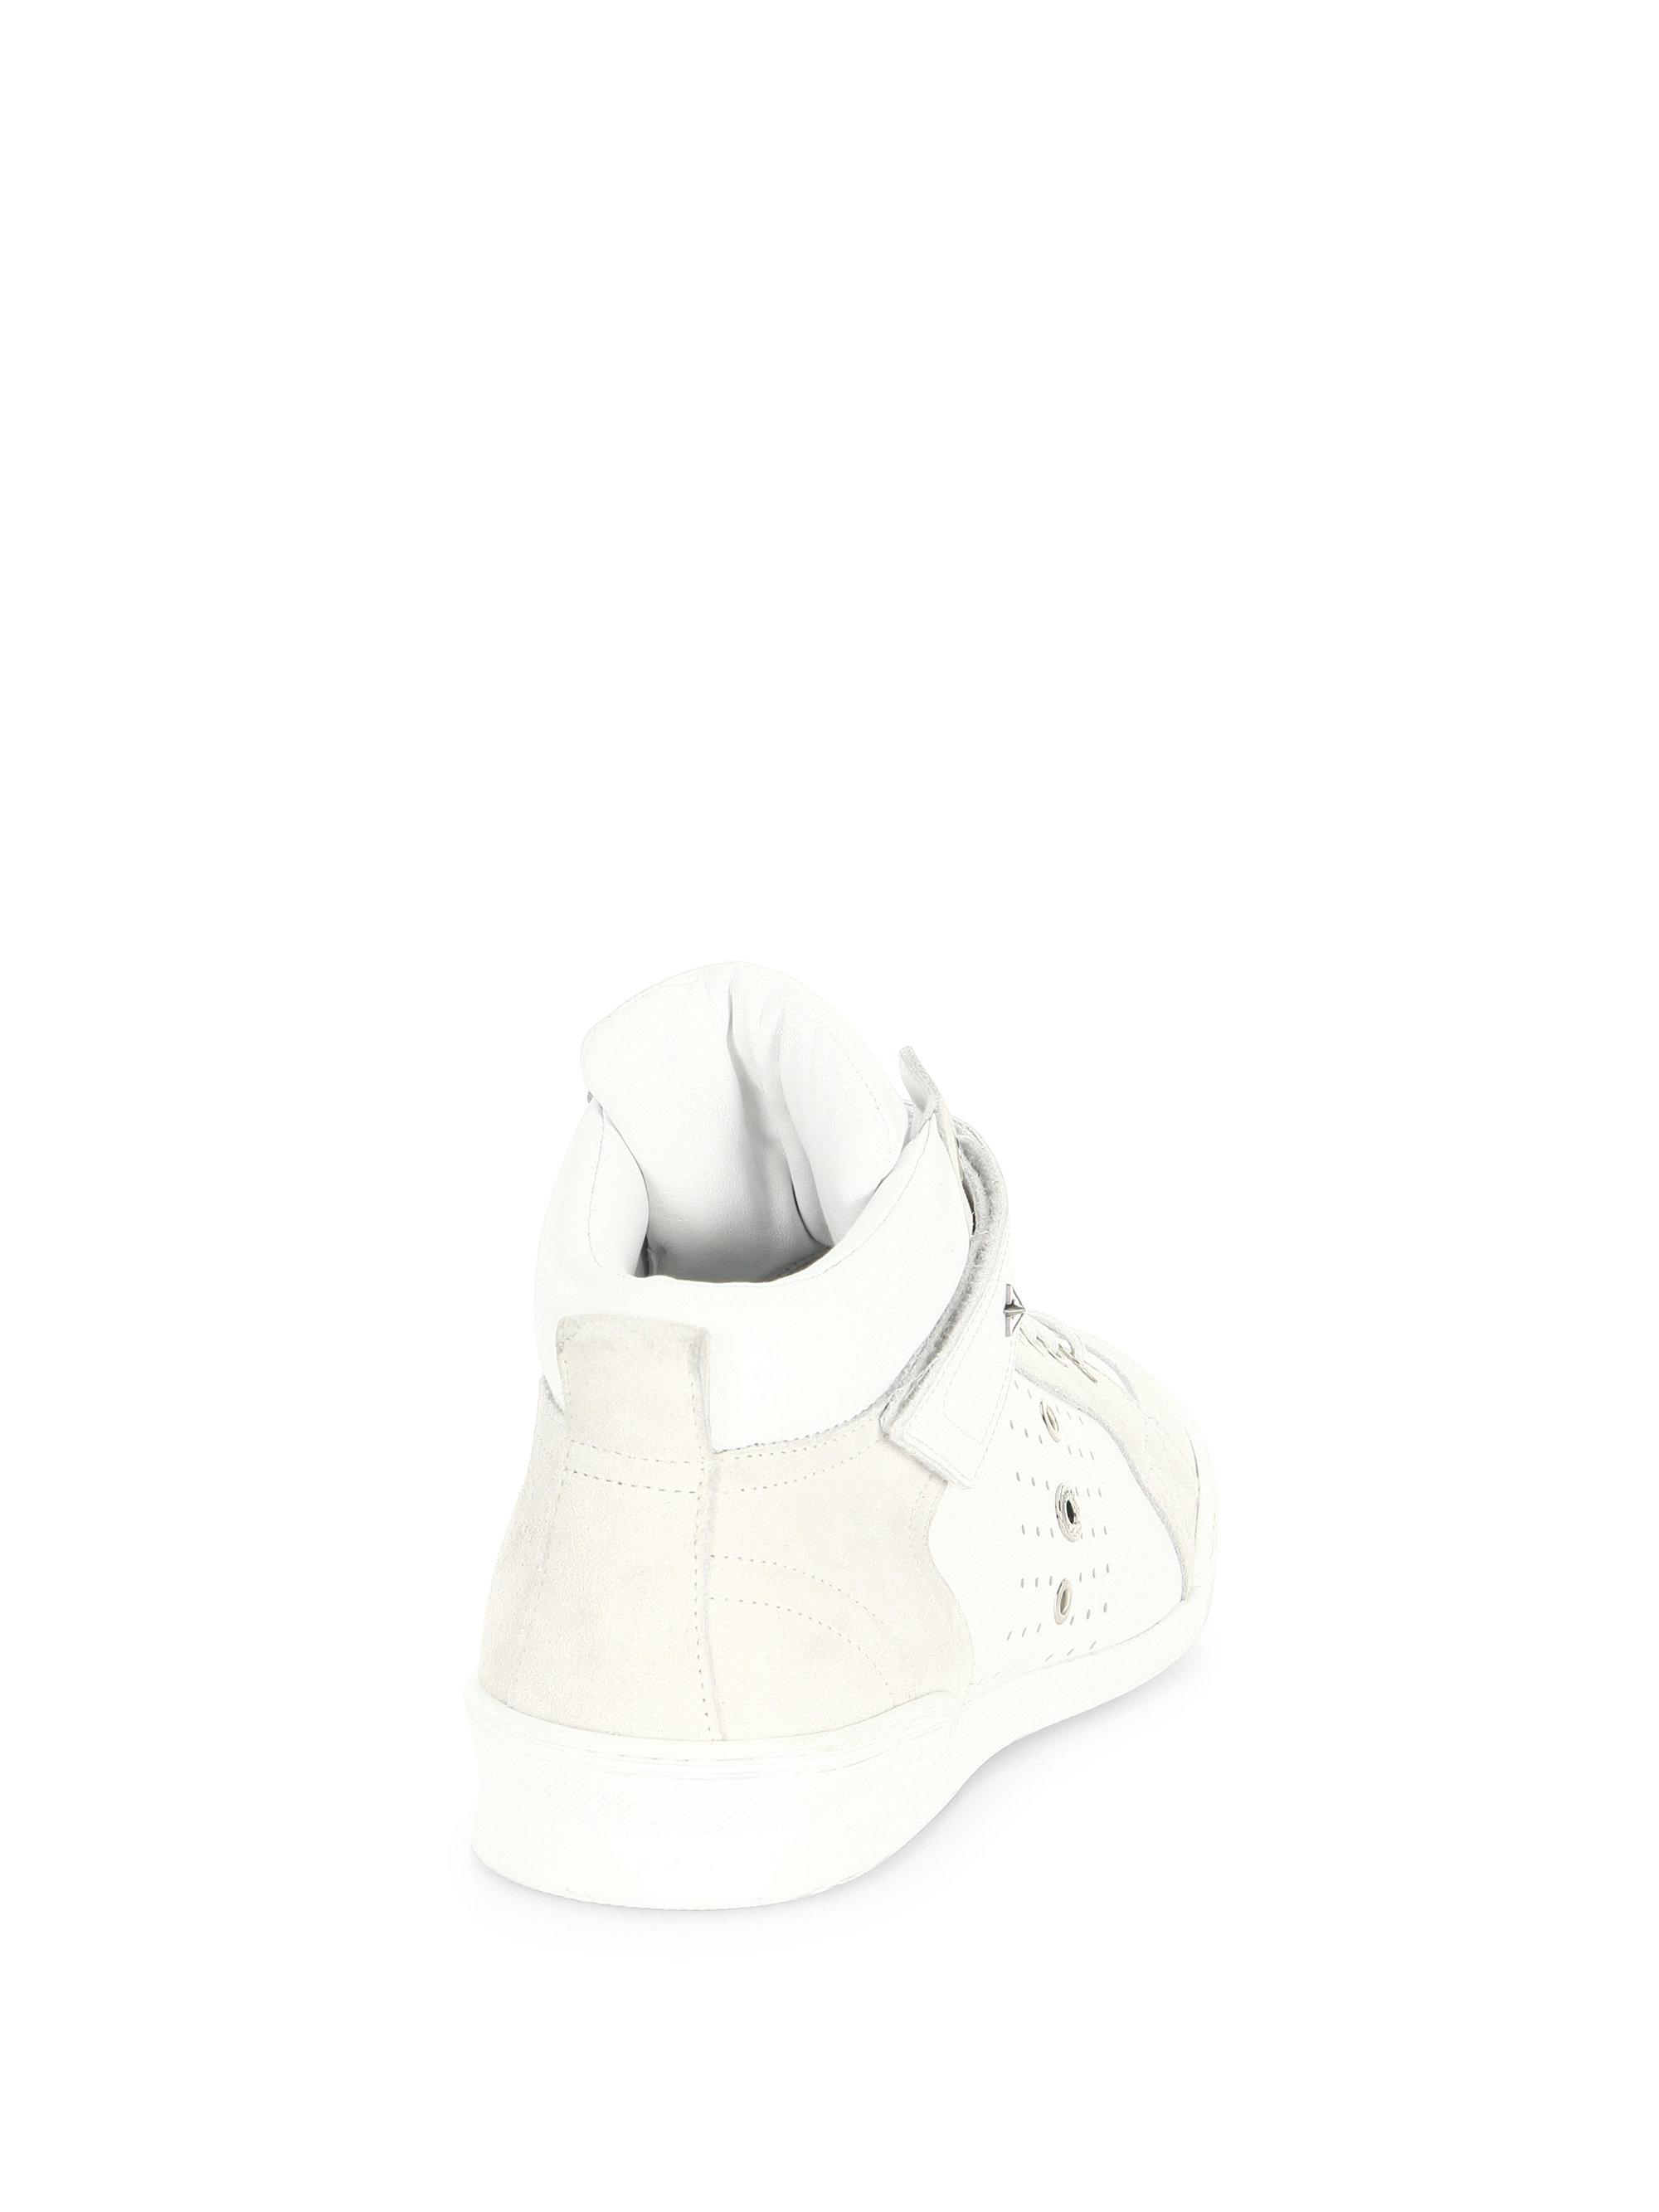 Jimmy choo Perforated High-Top Trainer Sneakers Ha4Xk